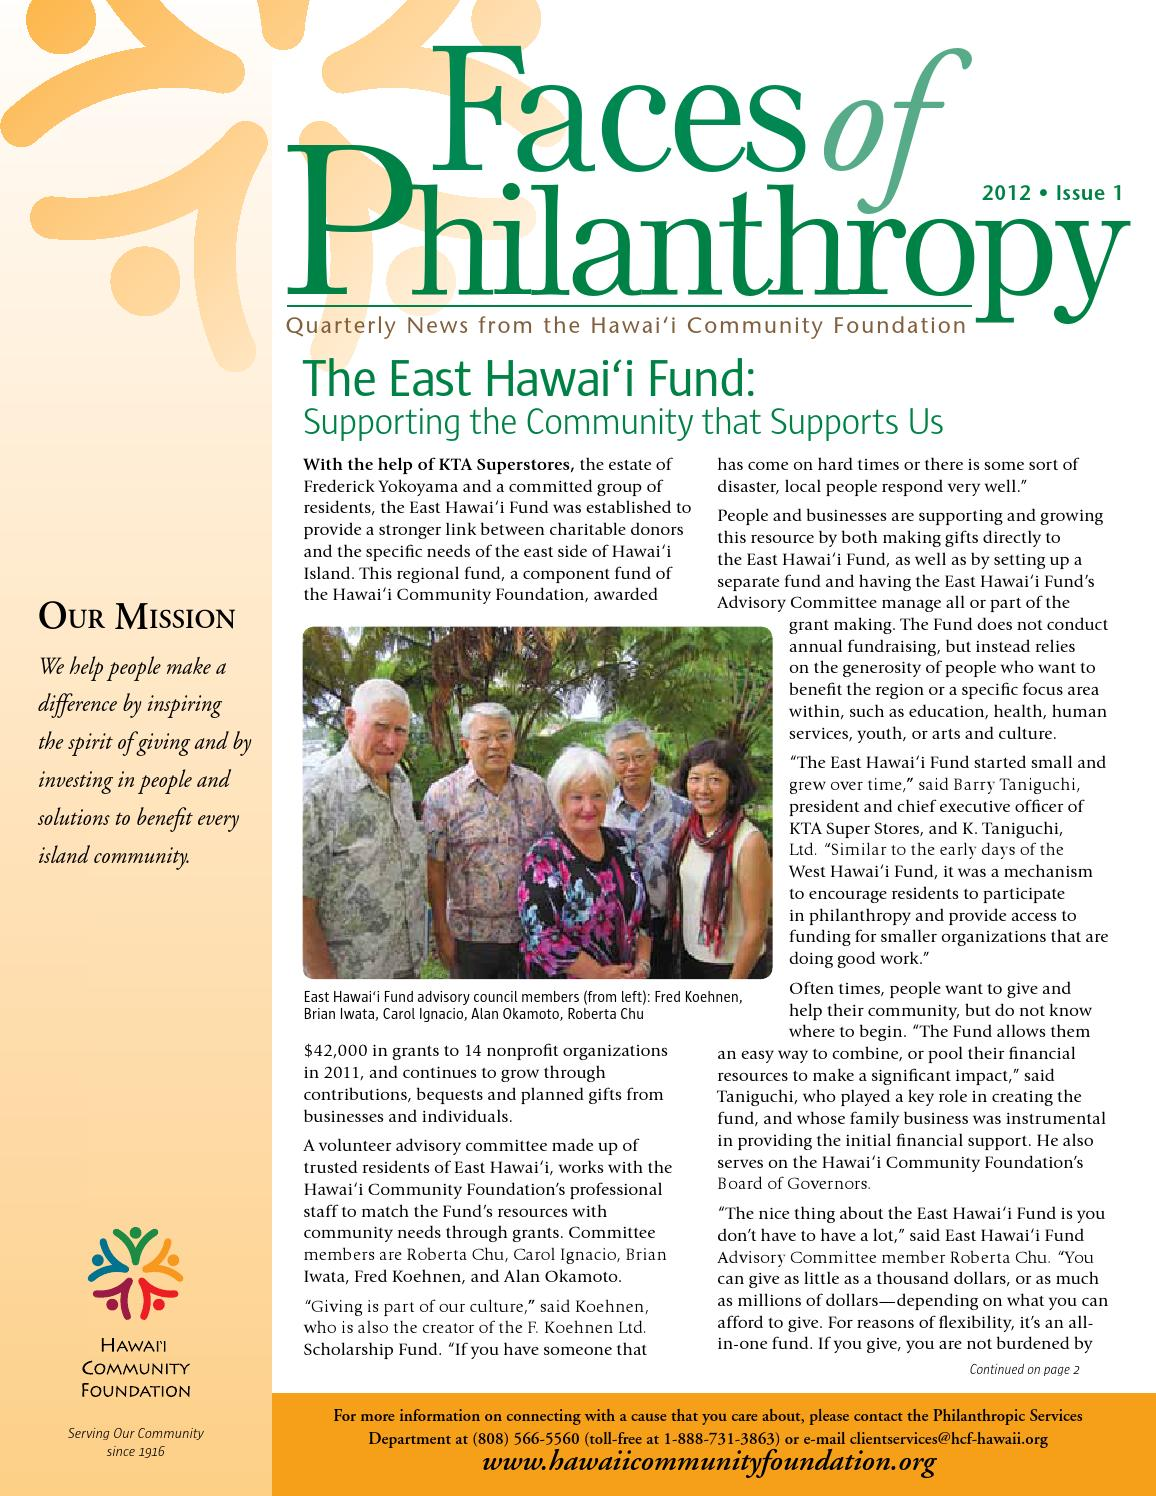 faces of philanthropy 2012 issue 1 by hawaii community foundation